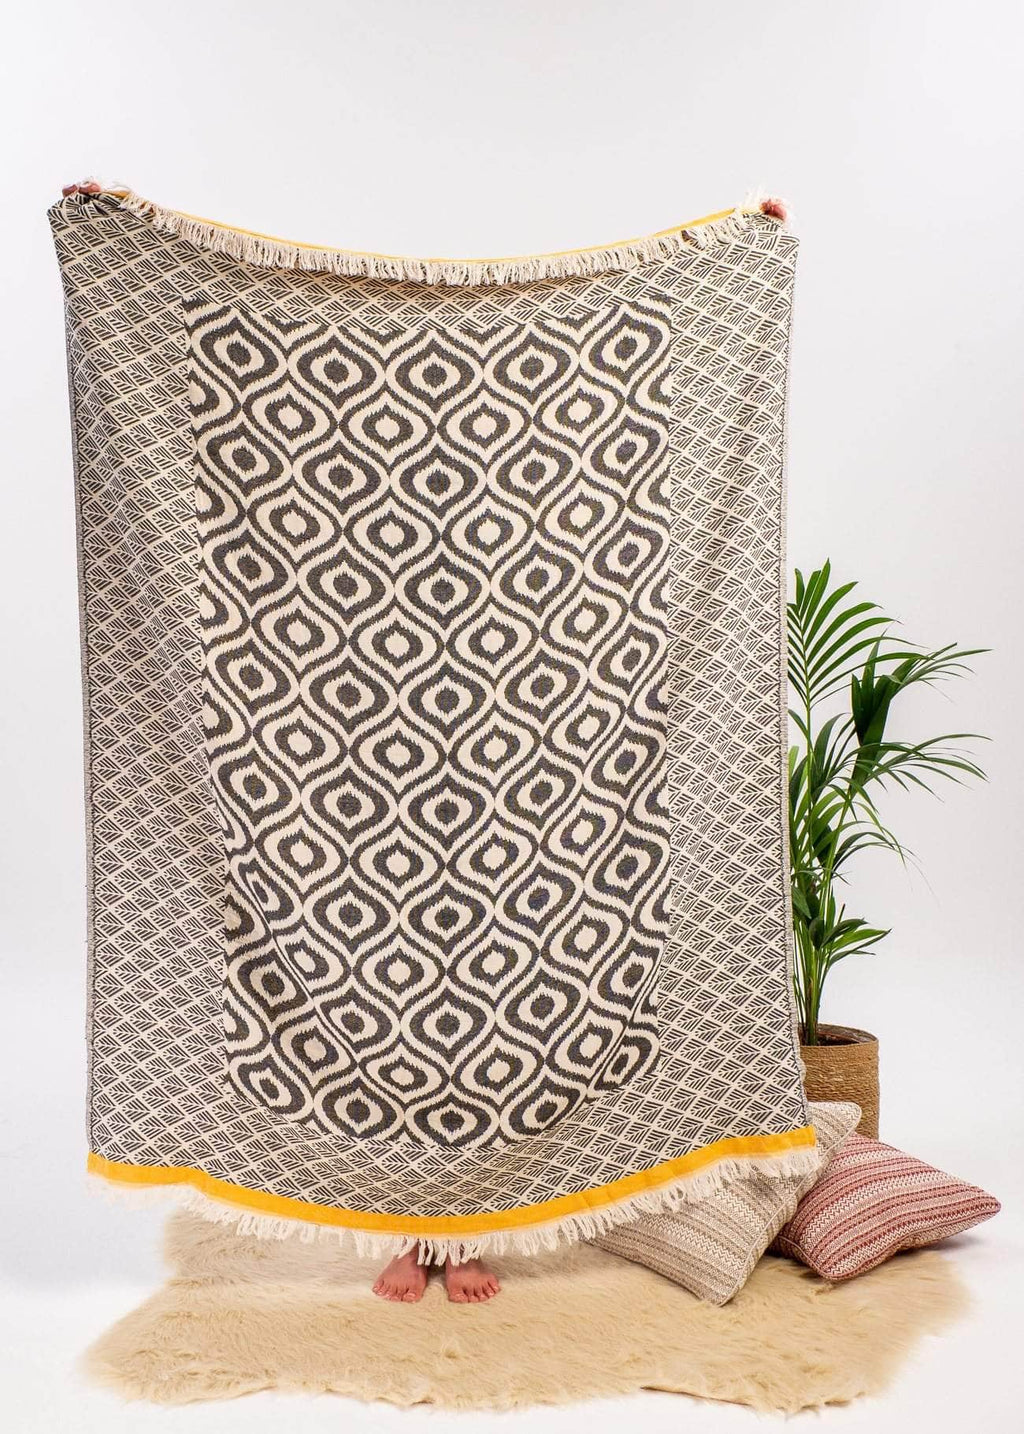 Zesty Throw Blanket - Bezzazan